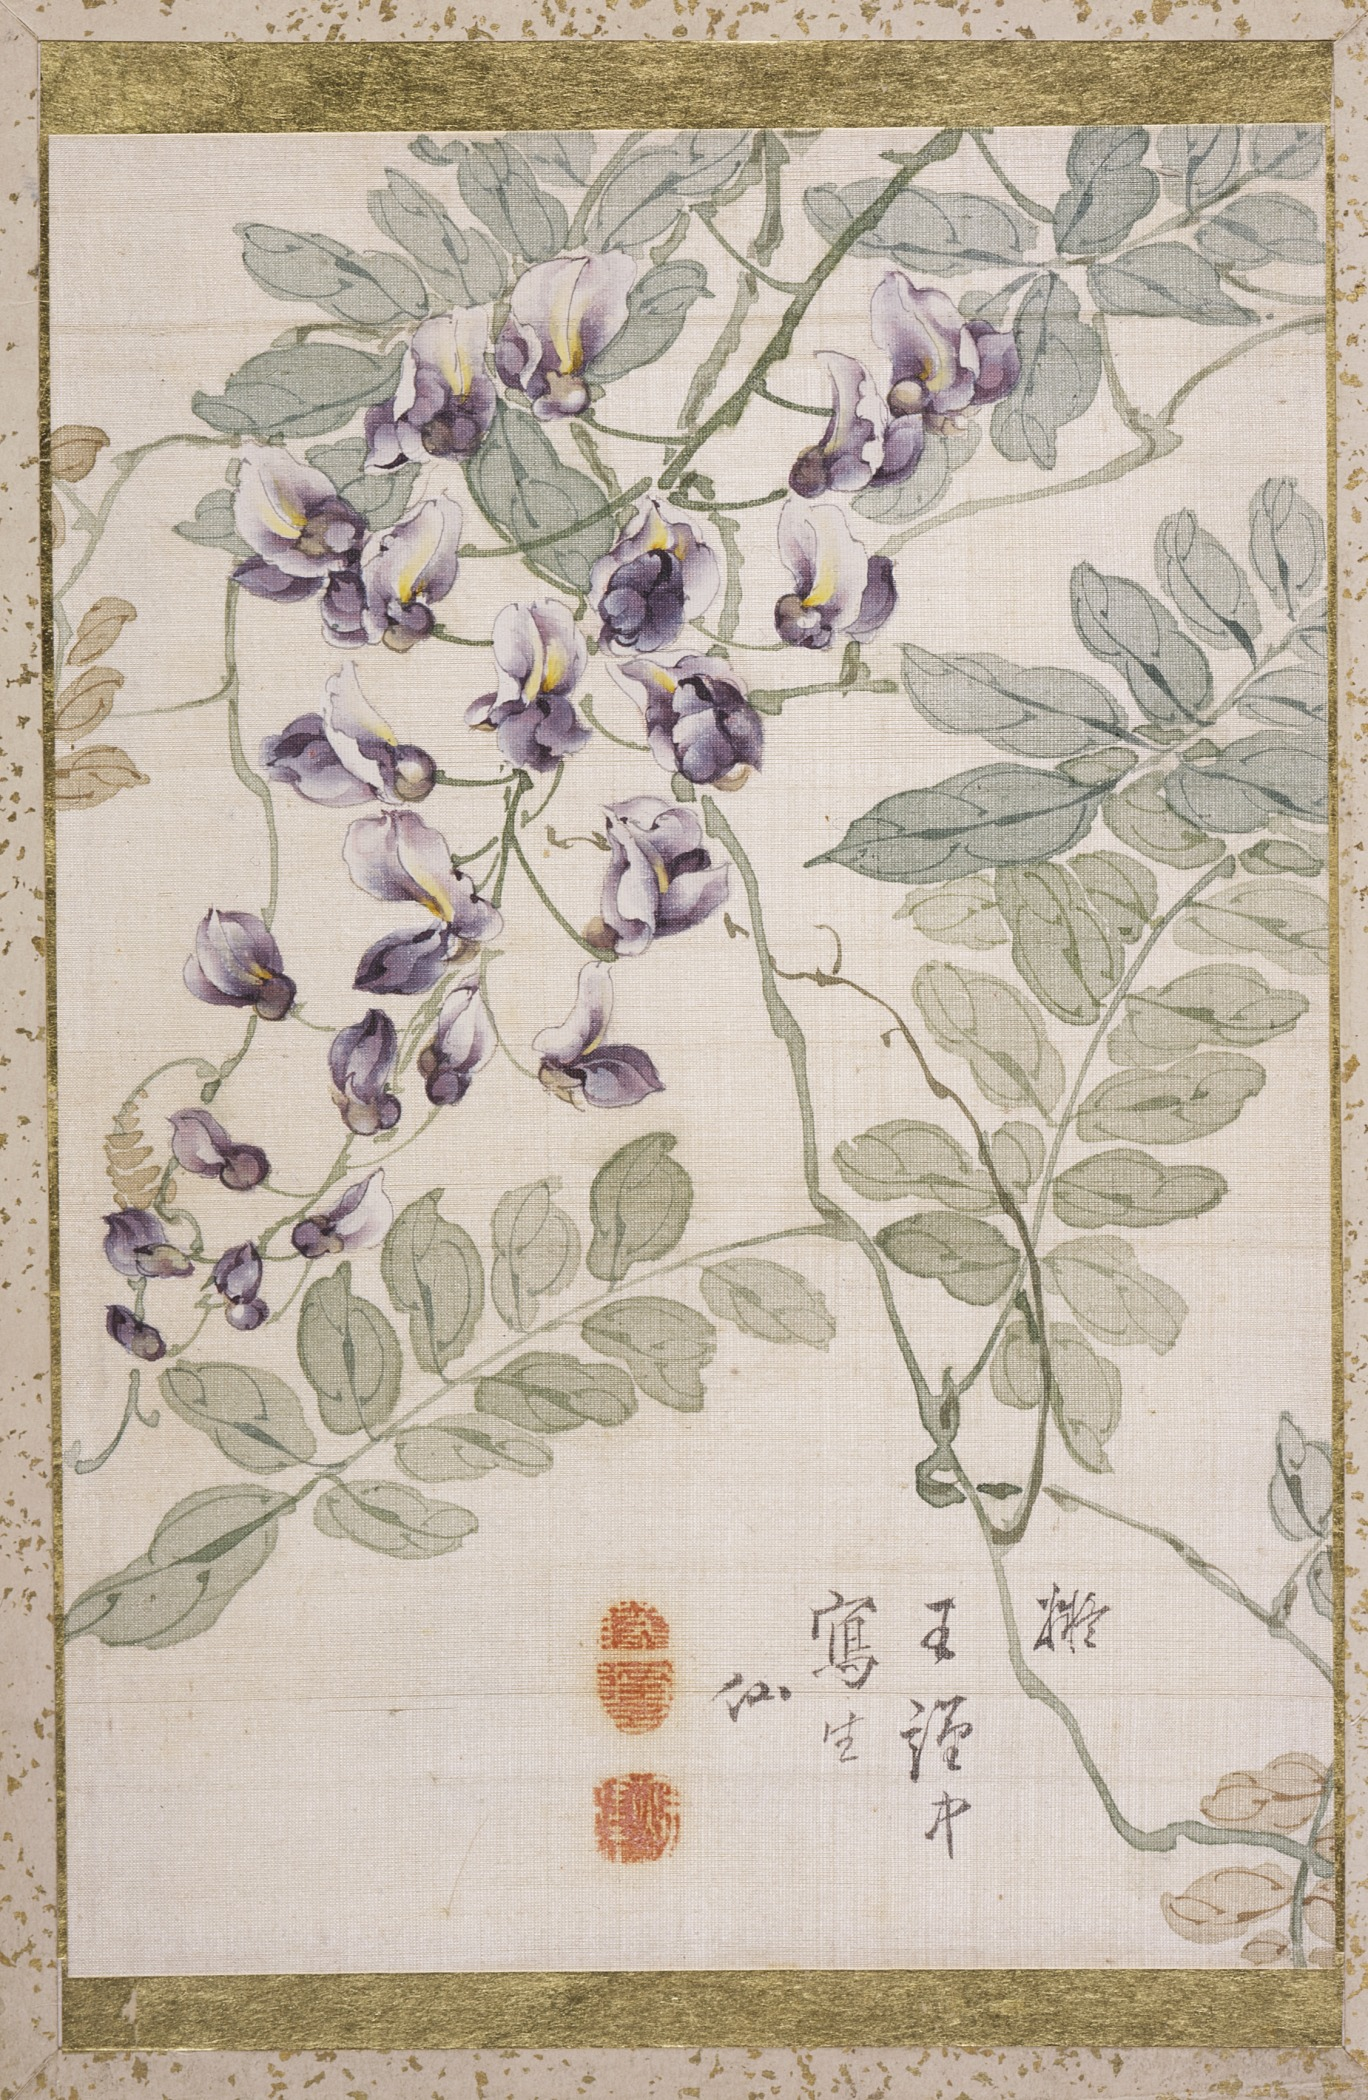 https://upload.wikimedia.org/wikipedia/commons/1/1f/Pictures_of_Flowers_and_Birds_LACMA_M.85.99_%283_of_25%29.jpg